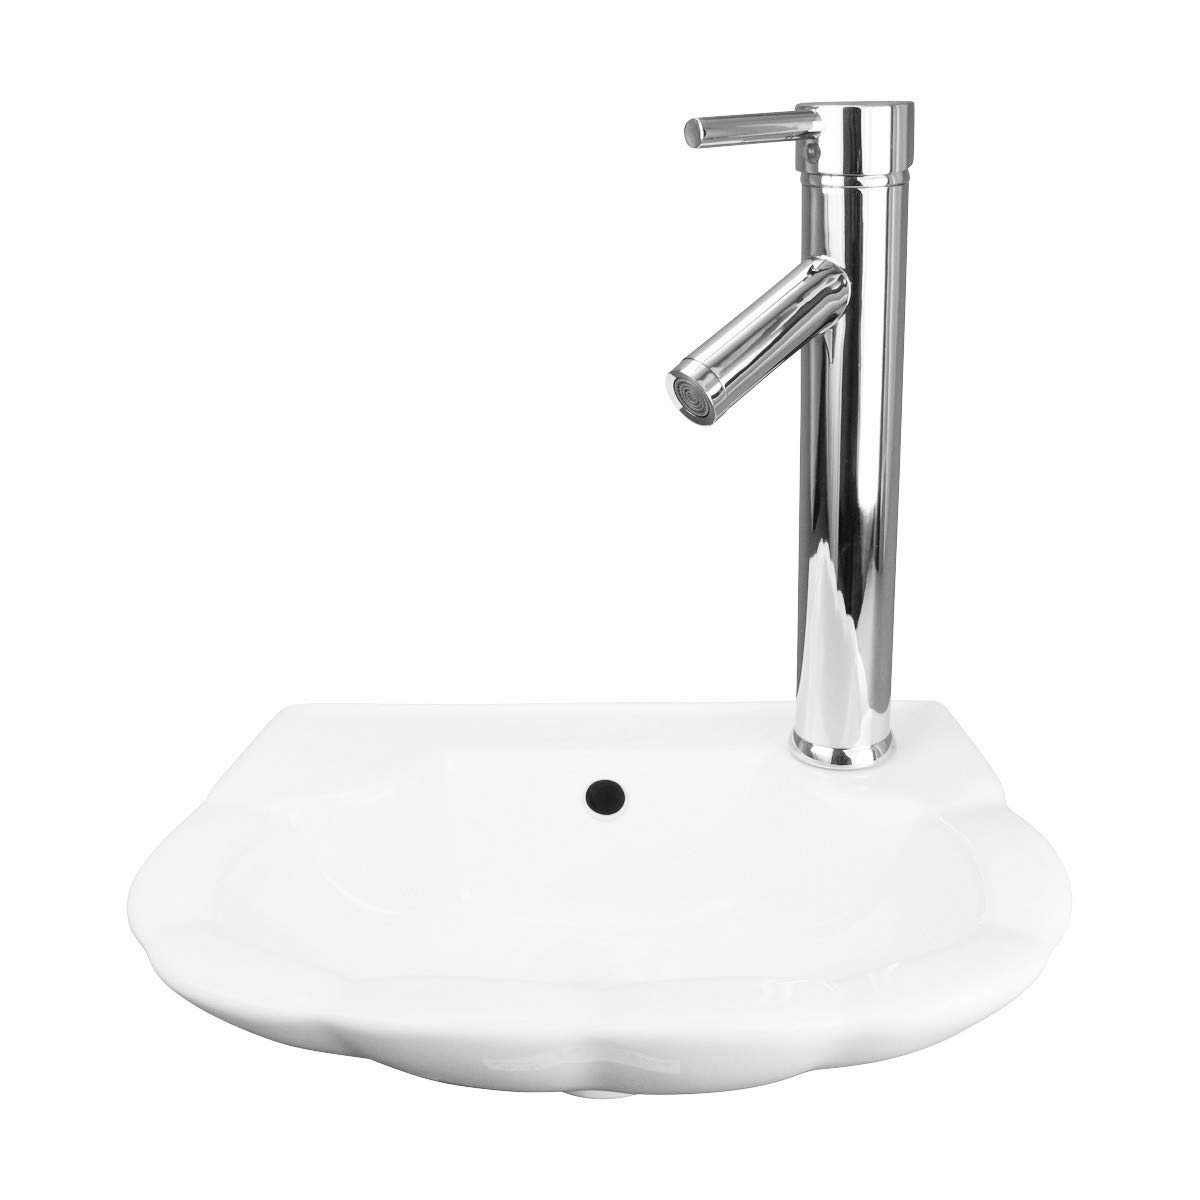 Small Wall Mount Bathroom Sink White Periwinkle Design 14 1 4 W Renovator s Supply